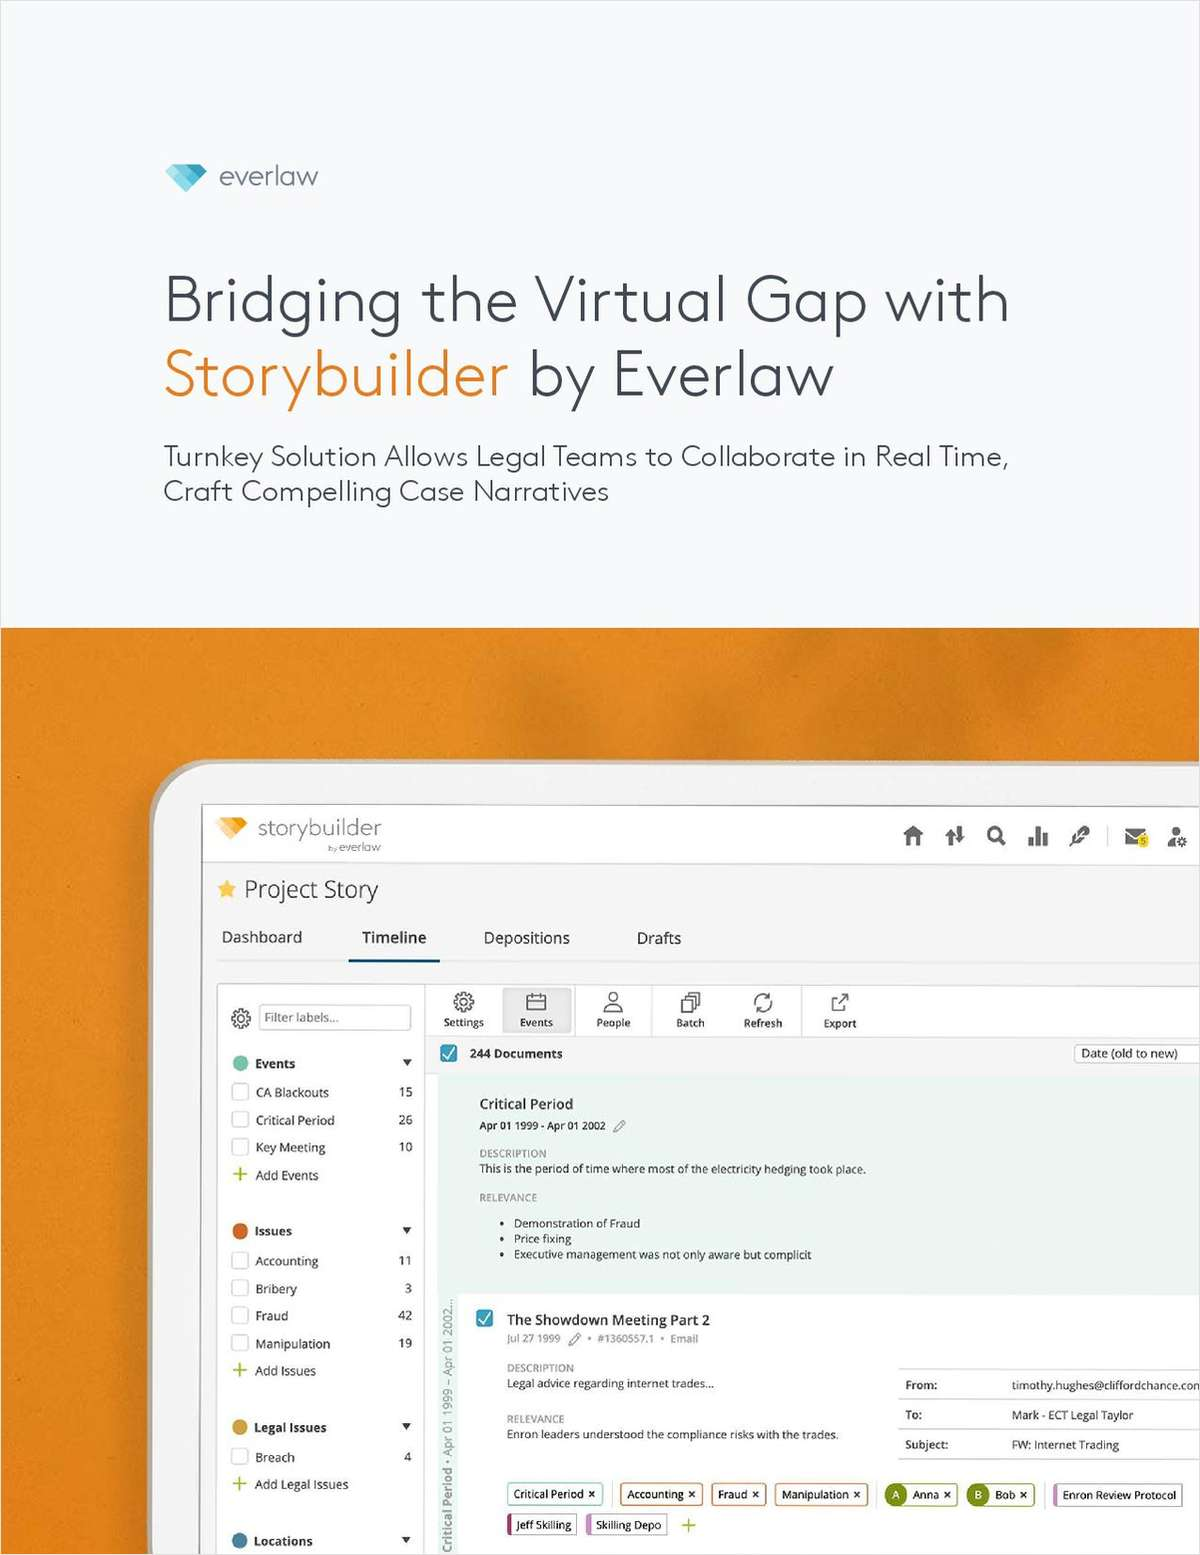 Bridging the Virtual Gap with Storybuilder by Everlaw